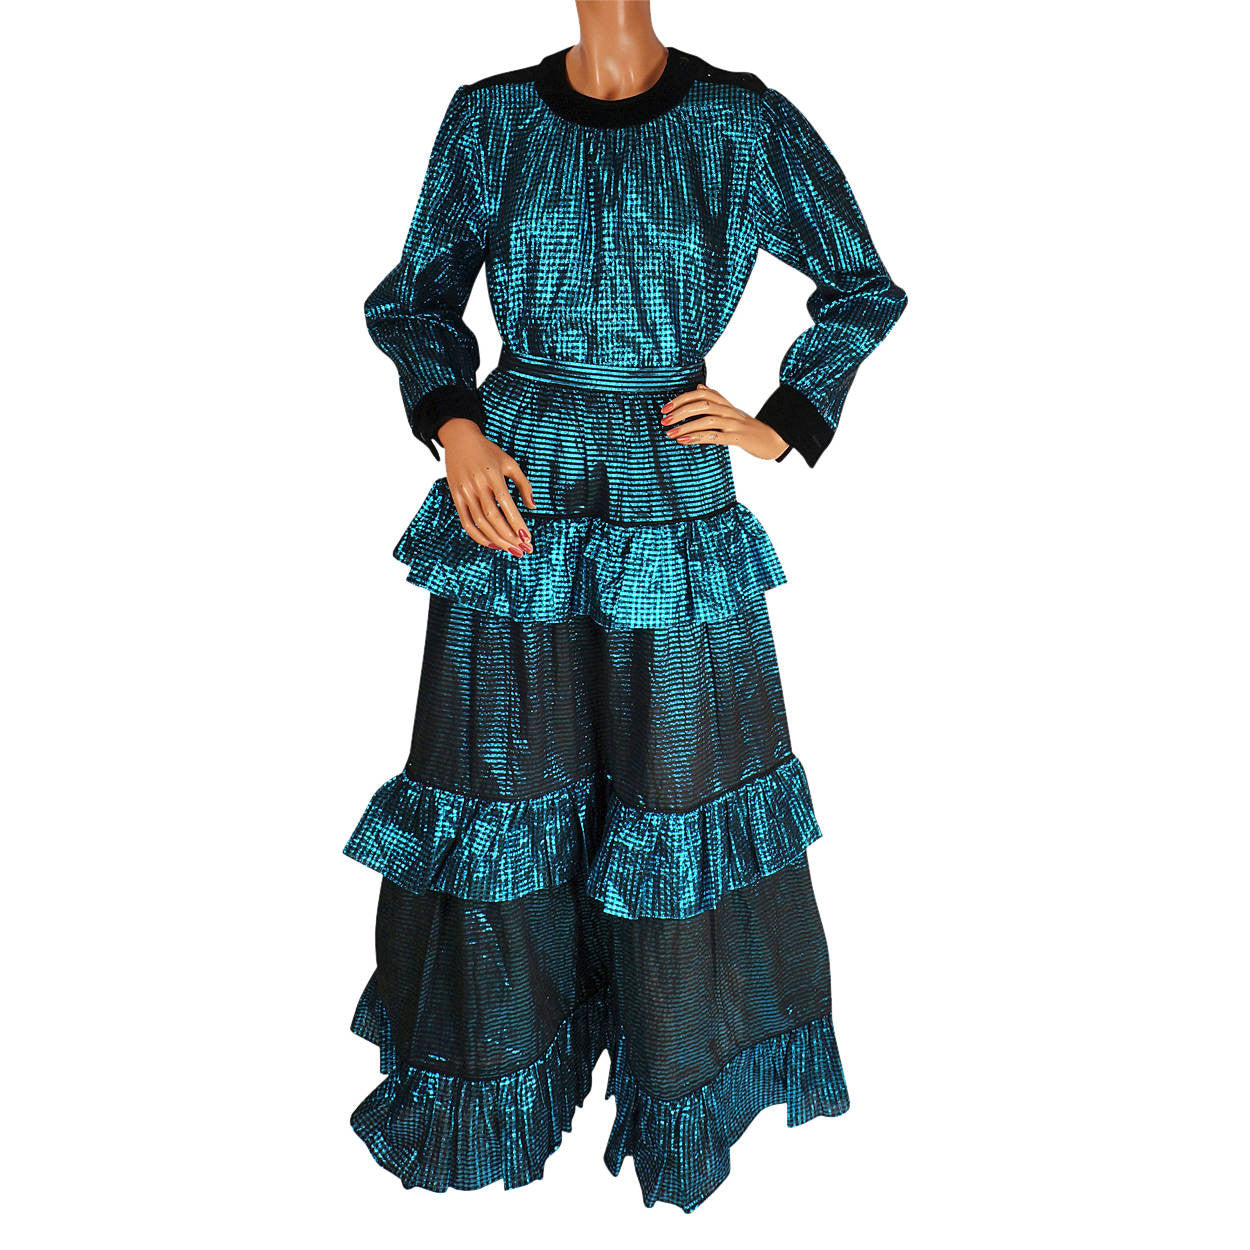 f0258e624 Vintage 1970s Yves Saint Laurent Peasant Look Blouse and Skirt - L